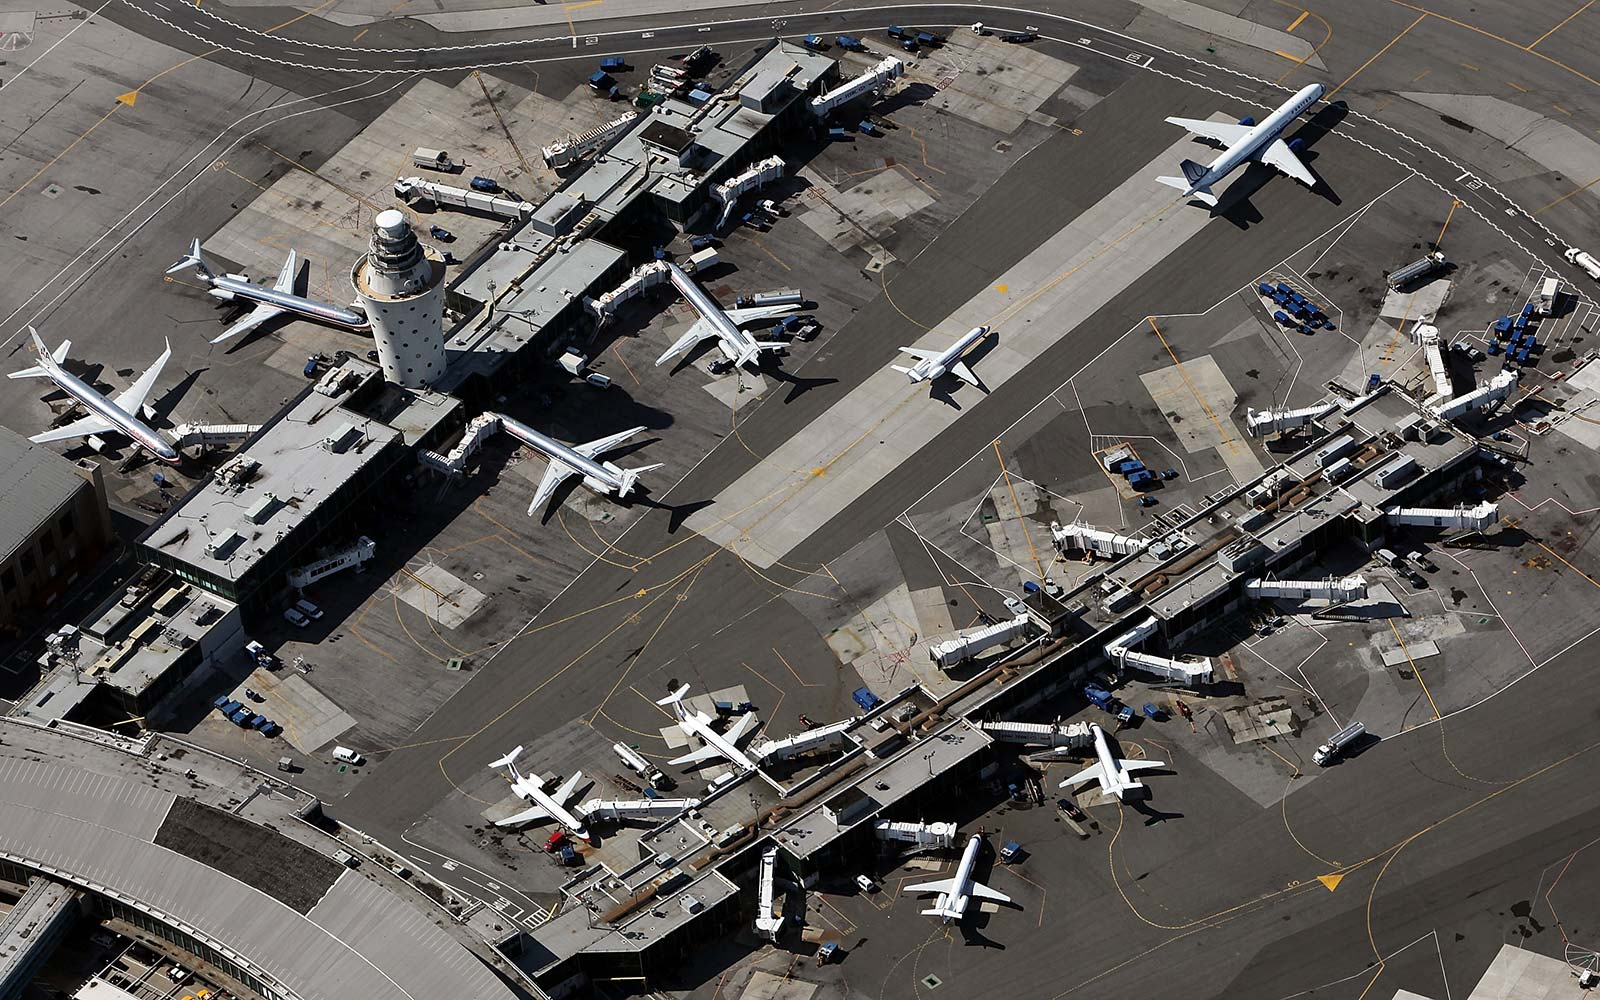 The Worst Airports, According to Pilots